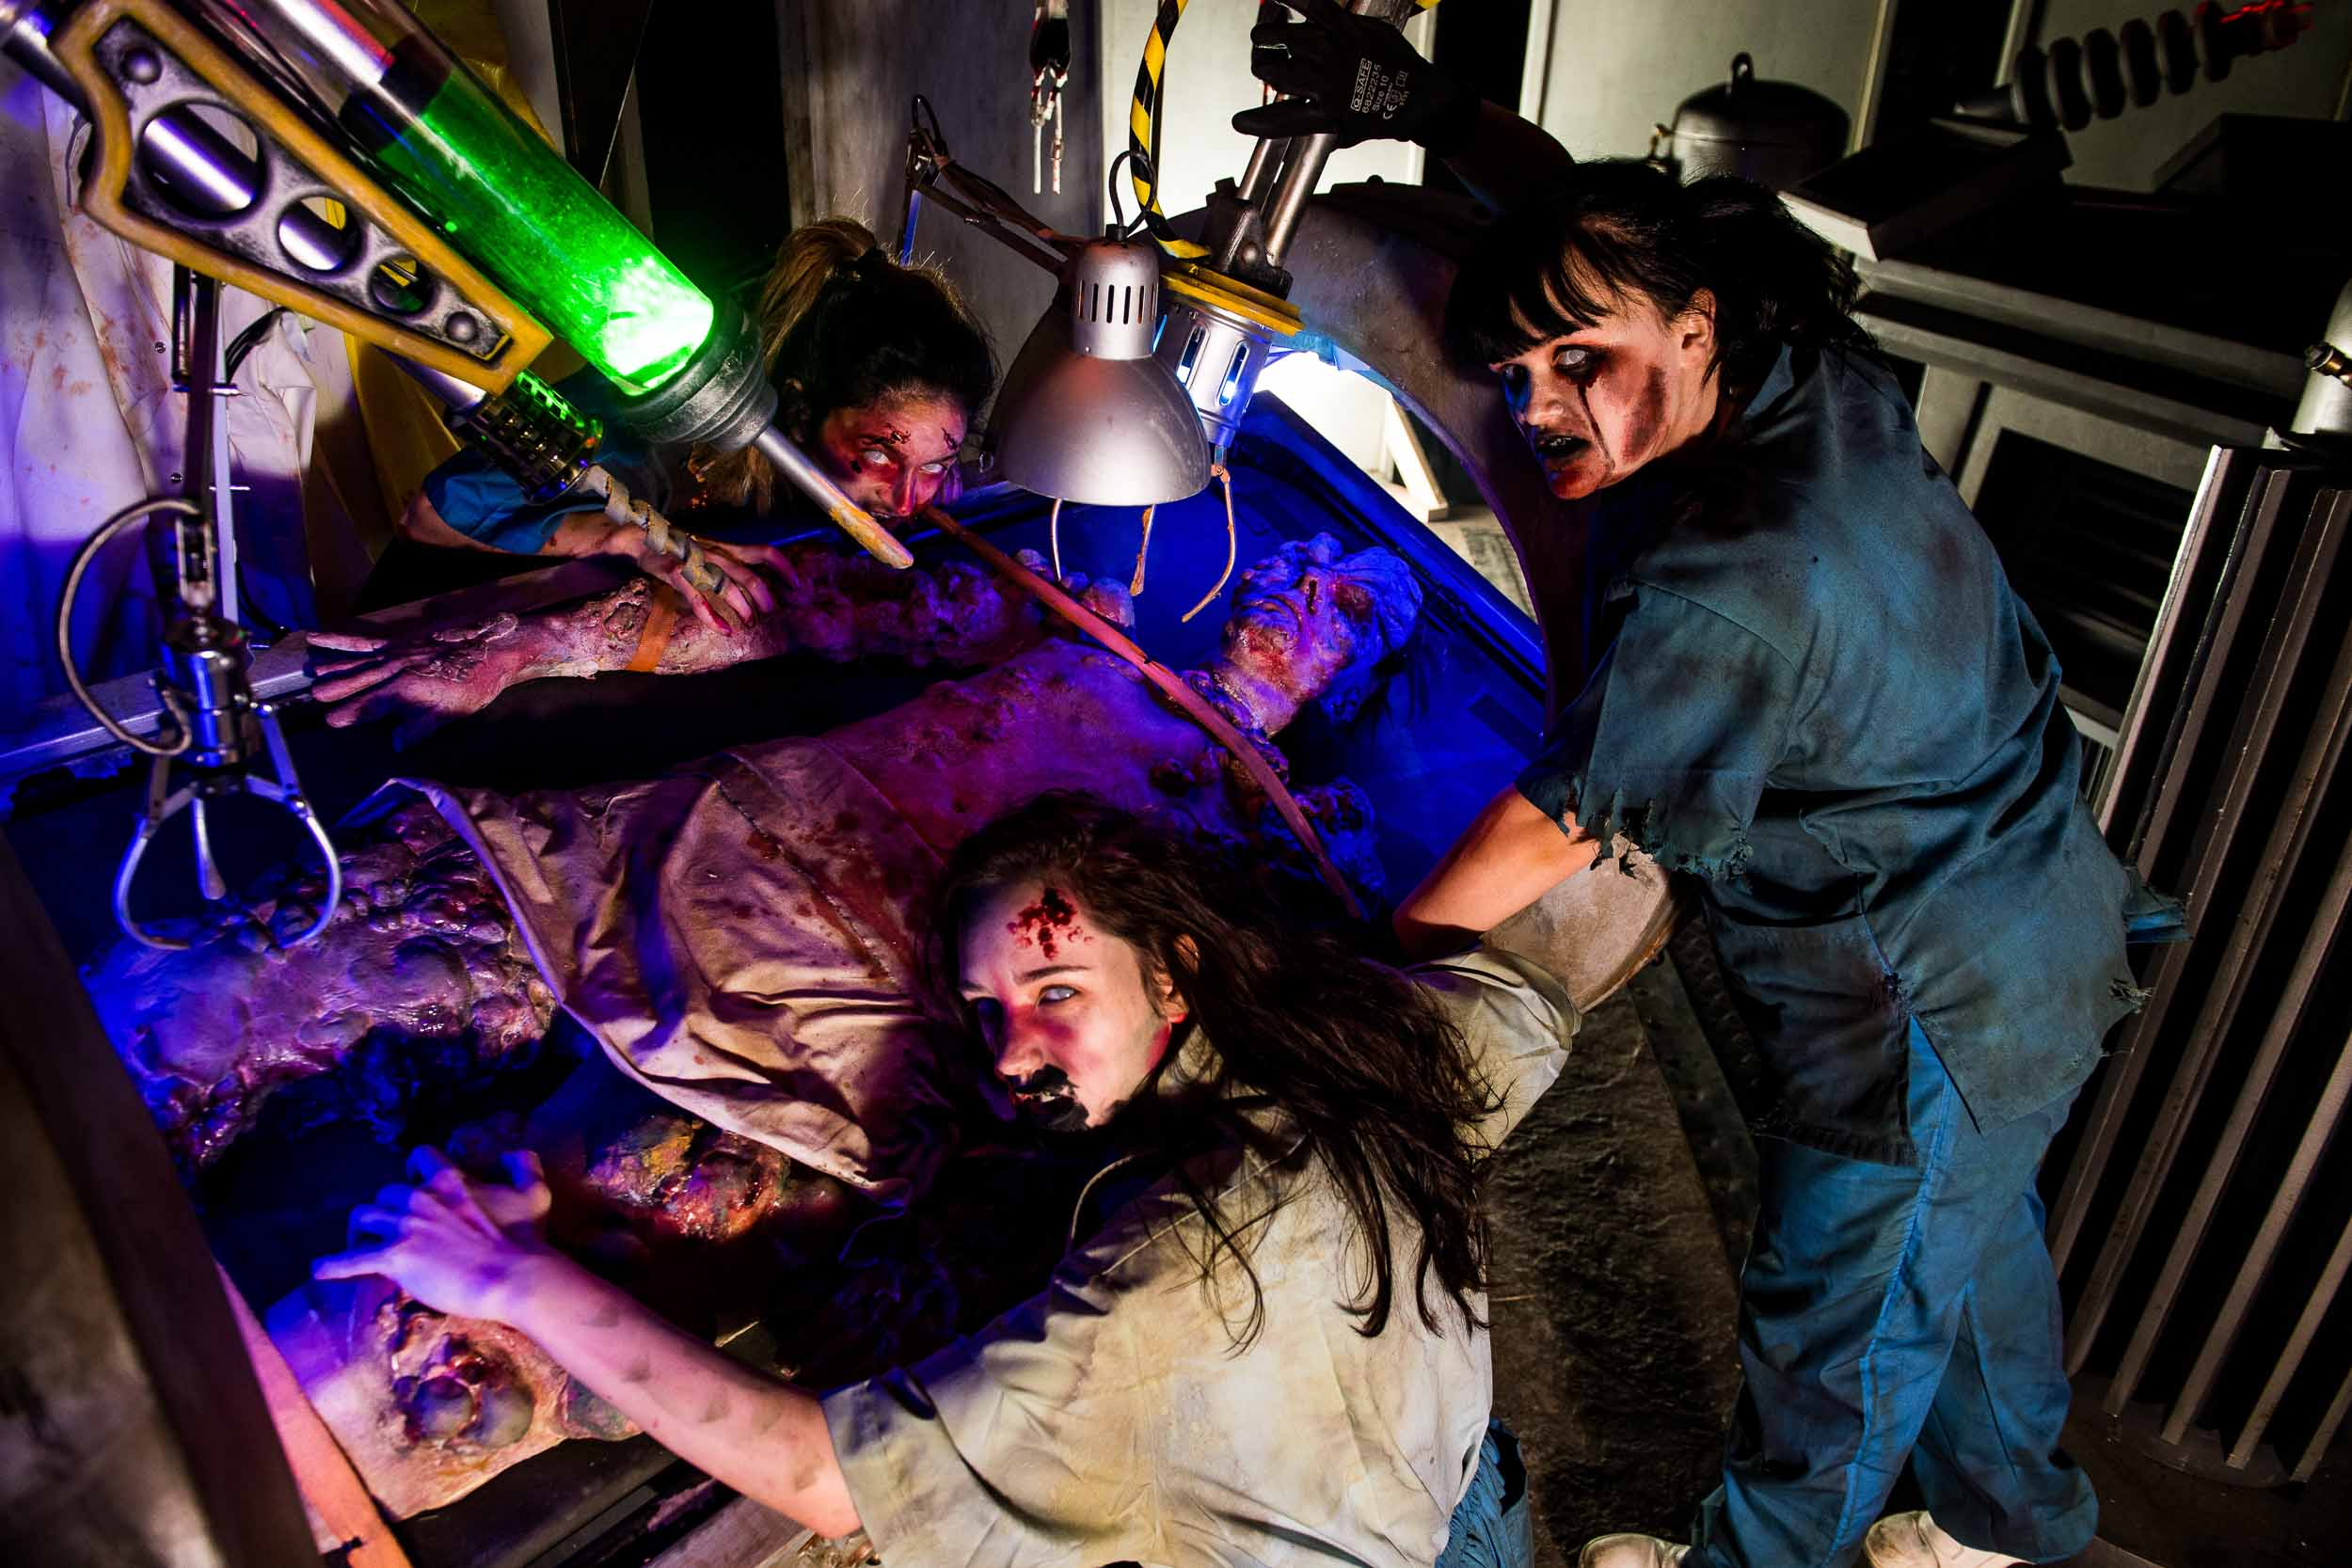 Post-apocalypse zombie nurses eat their patients at Alton Towers Scarefest